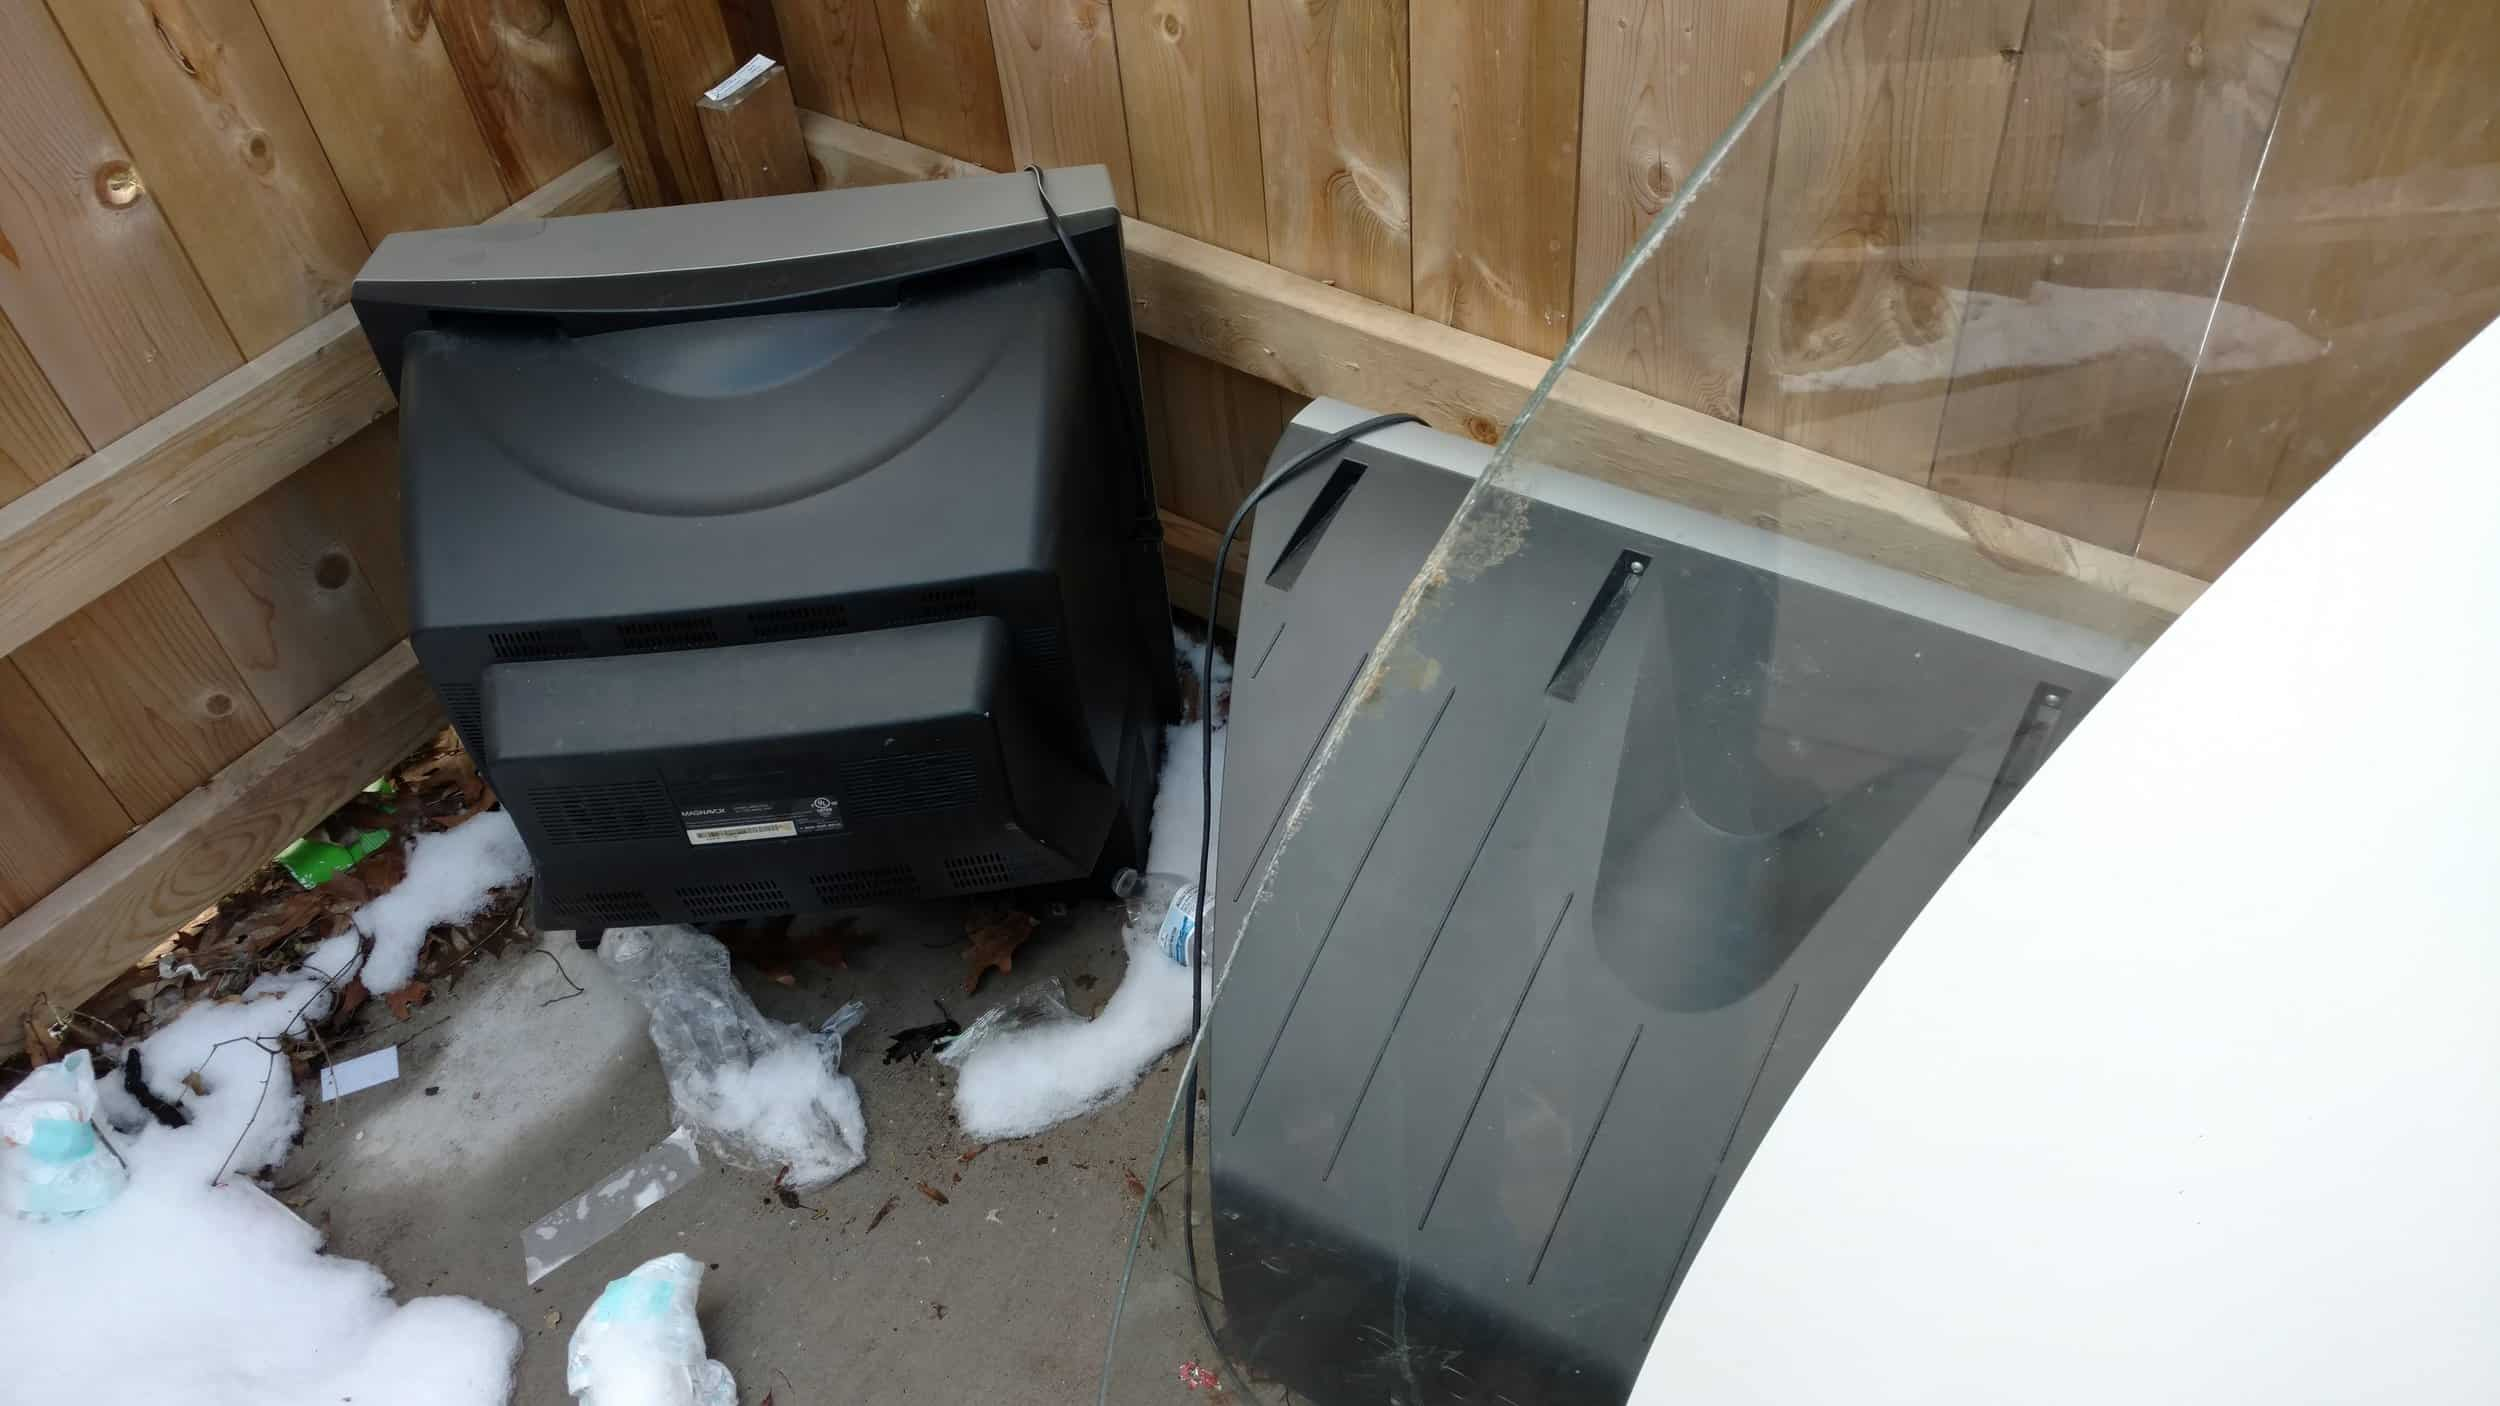 Post-Holiday Cleanup: How to Safely Dispose of Replaced Items